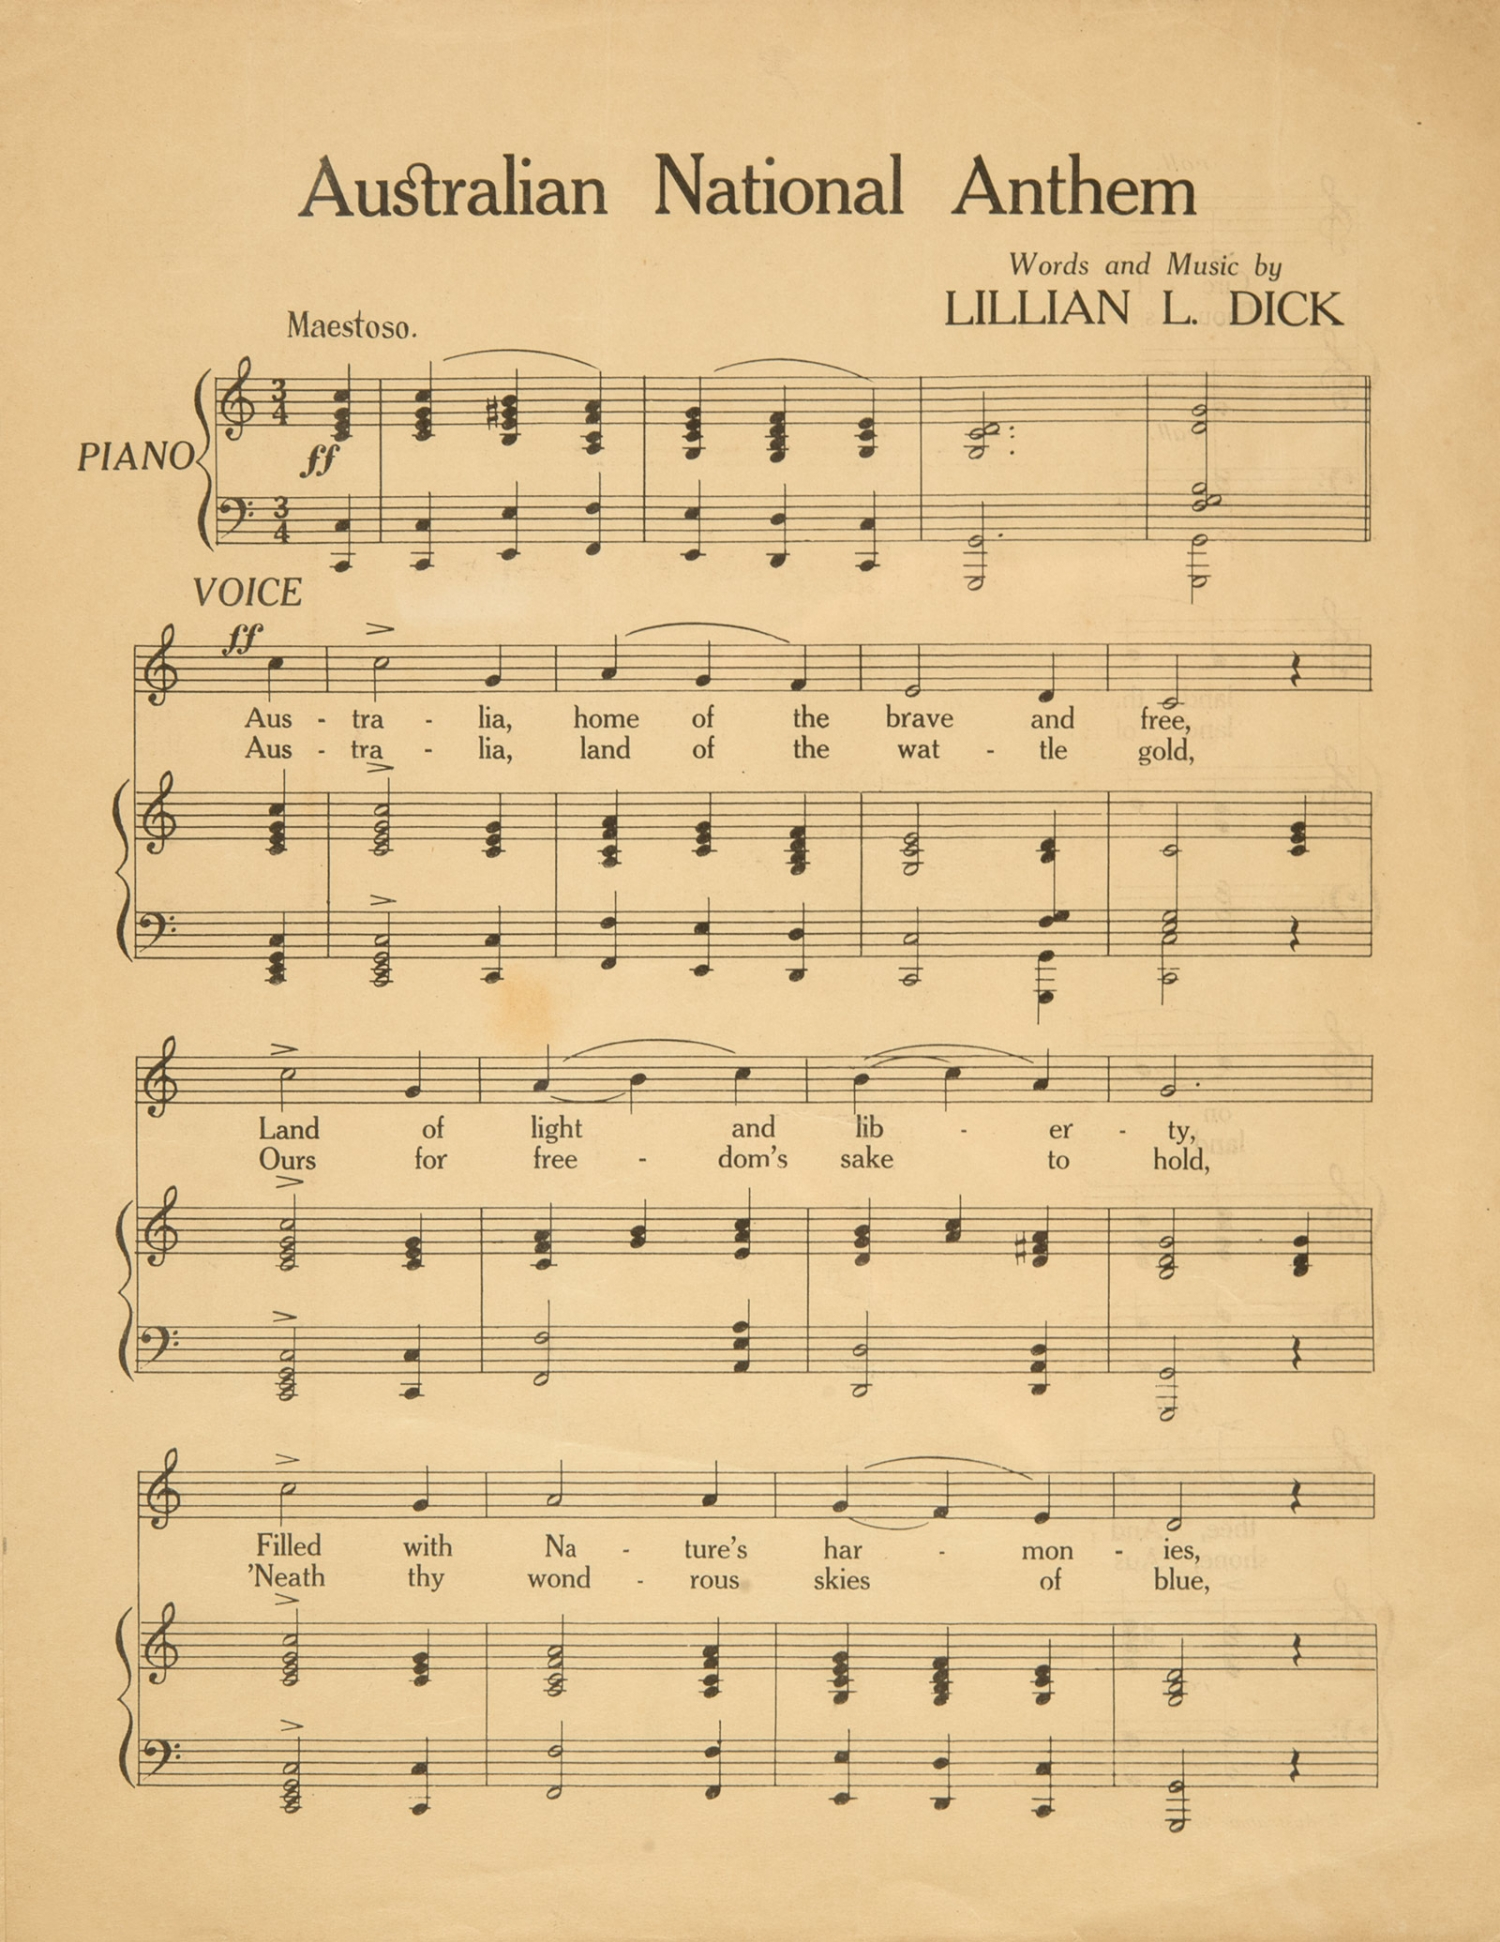 Sheet music,' Australian National Anthem', words and music by Lillian L. Dick, published 1934